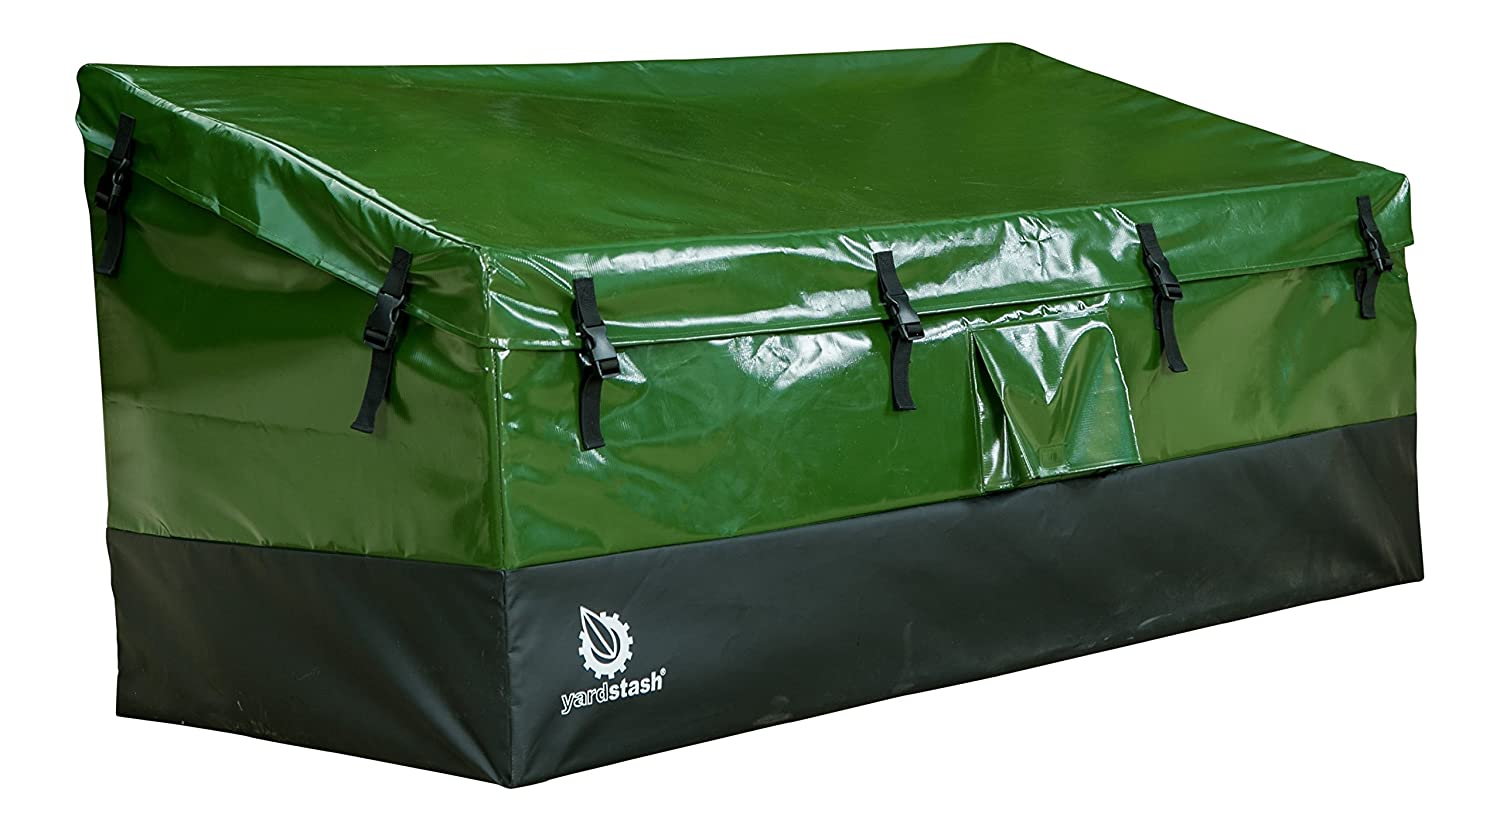 YardStash Outdoor Storage Deck Box XL: Easy Assembly, Portable, Versatile - Guaranteed to Not Warp, Crack or Leak